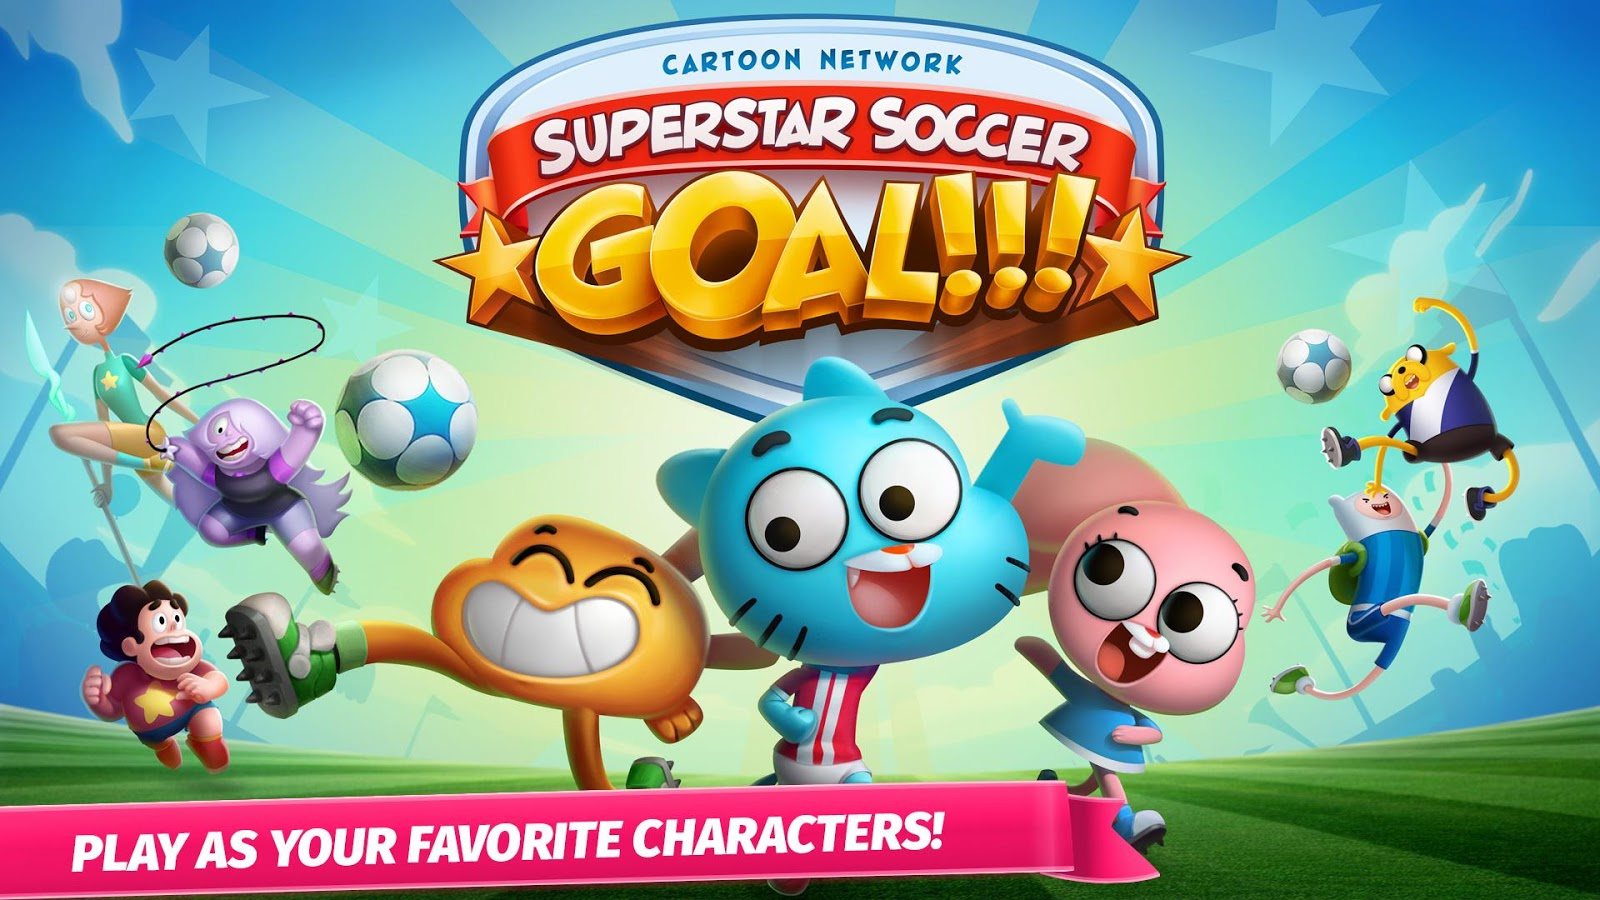 CN Superstar Soccer: Goal!!! Screenshot 5